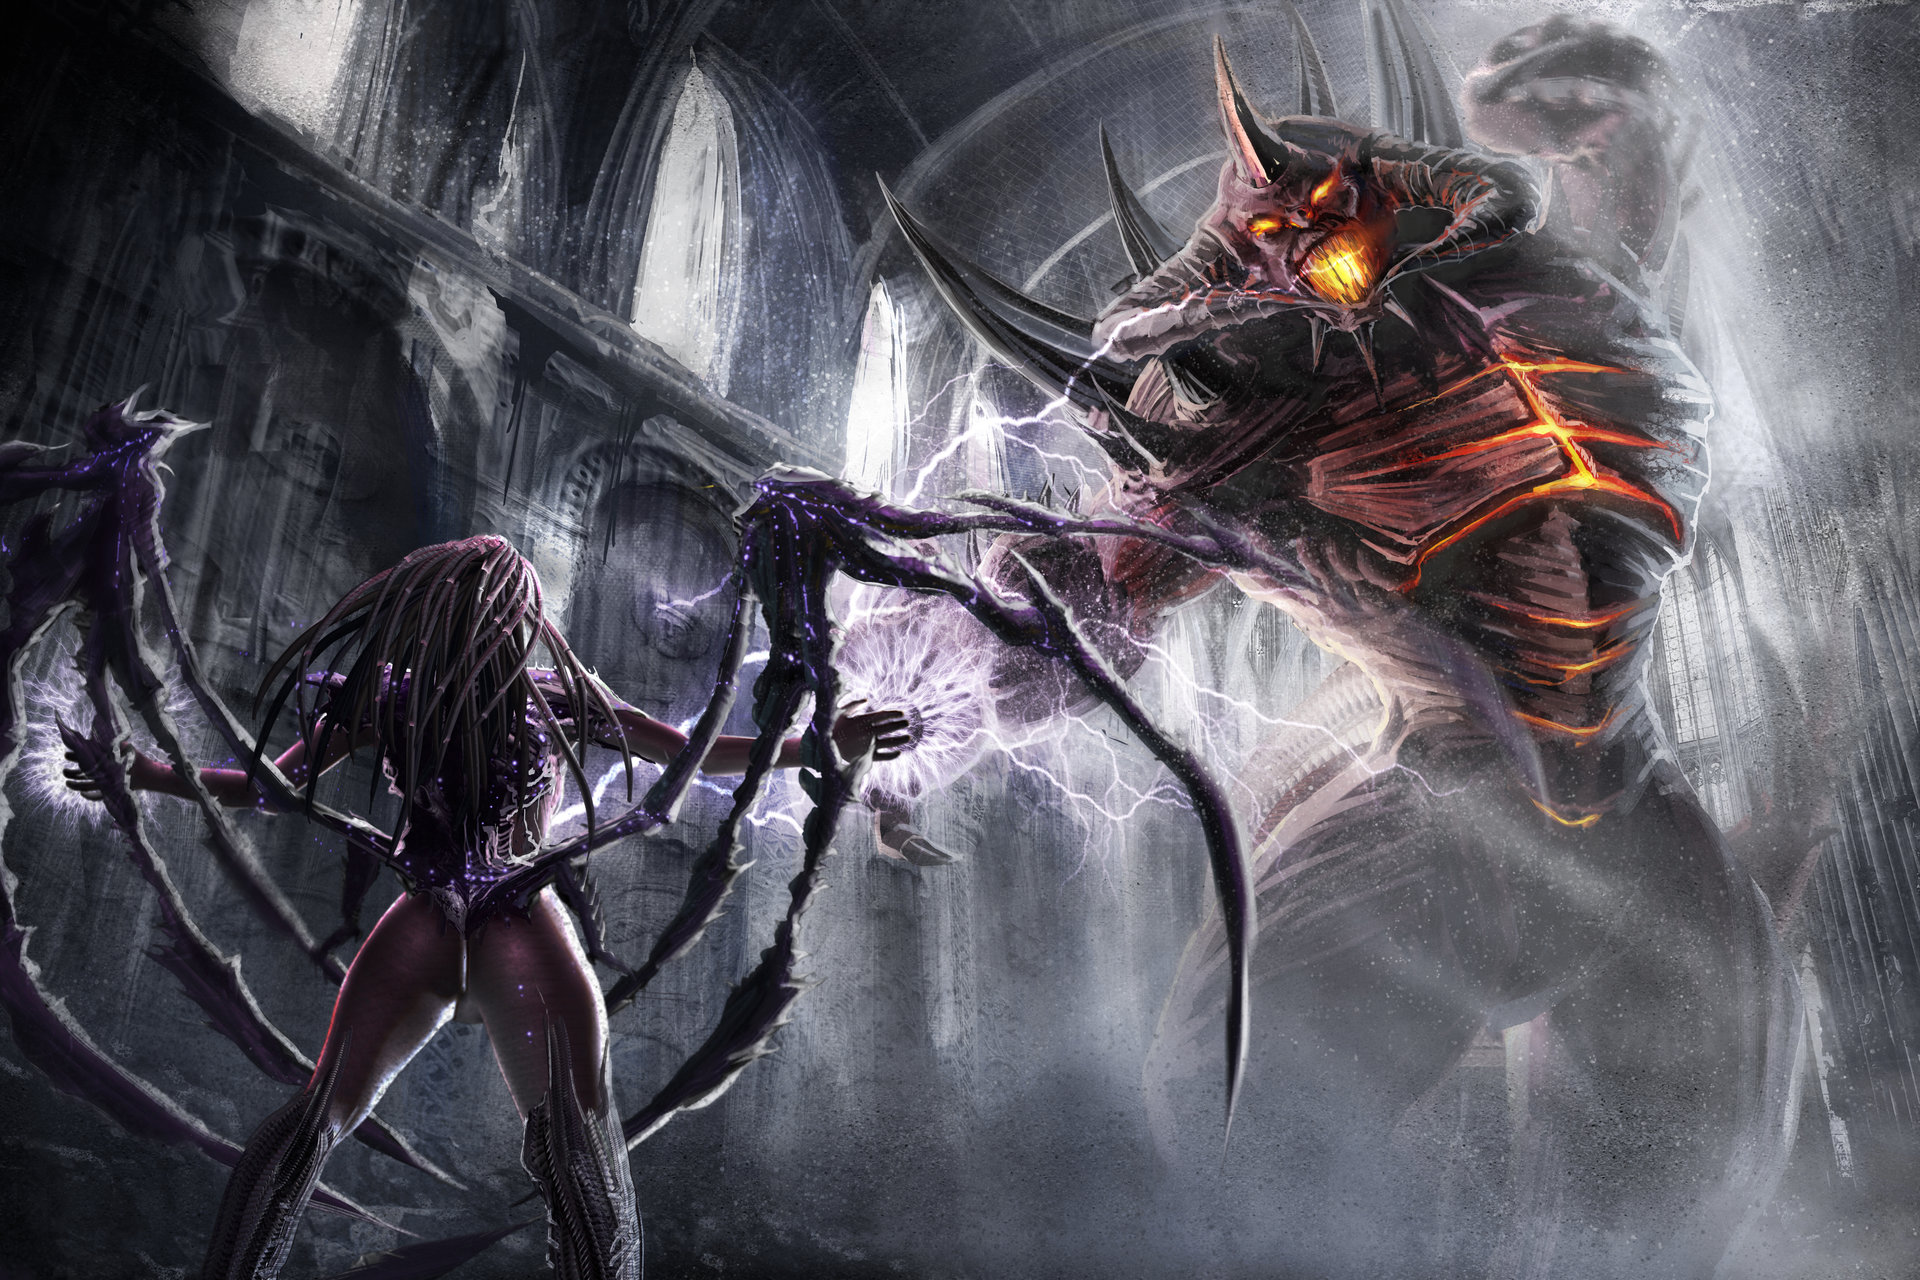 Nils nihils heroes of the storm queen of blades vs lord of terror